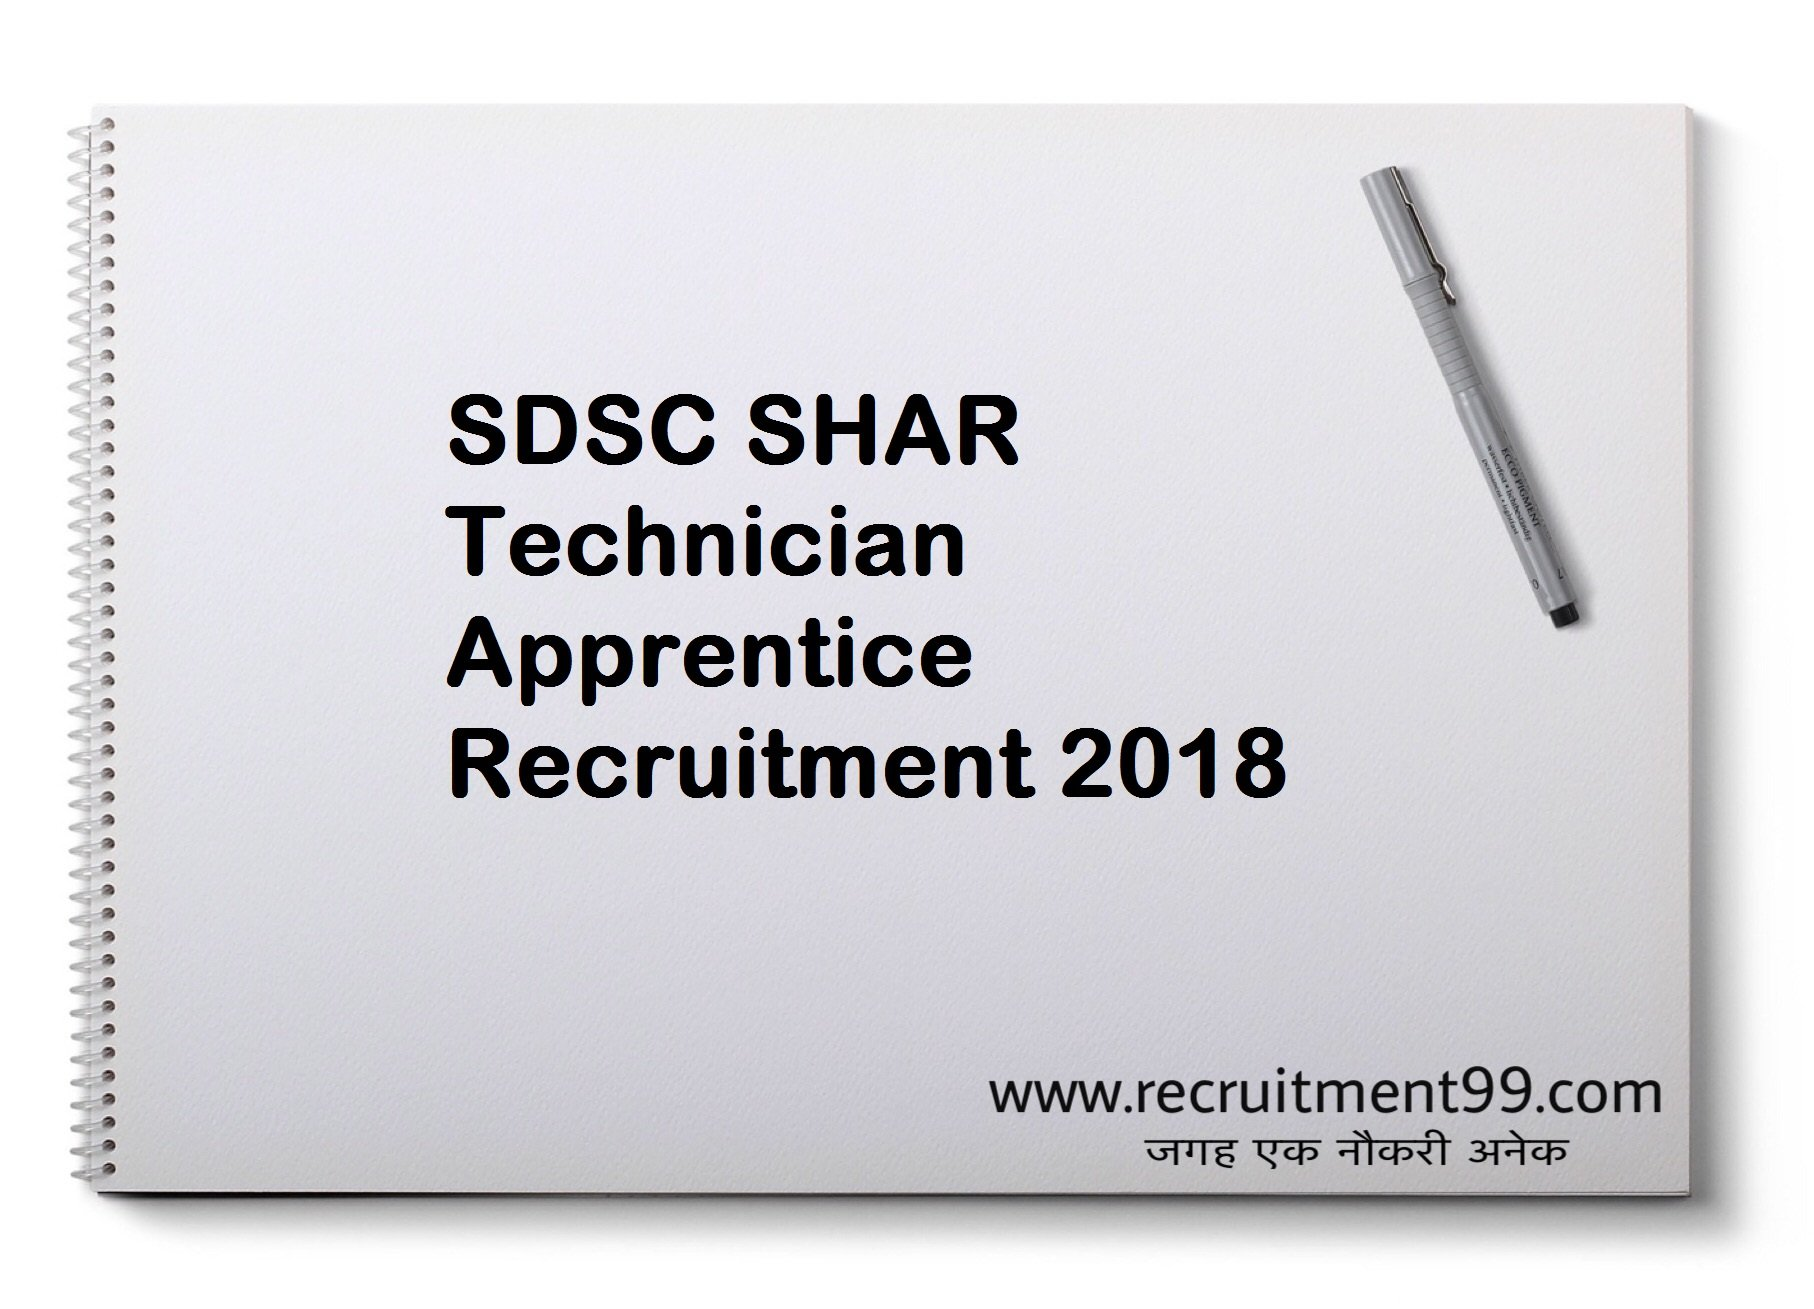 SDSC SHAR Technician Apprentice Recruitment Admit Card Result 2018